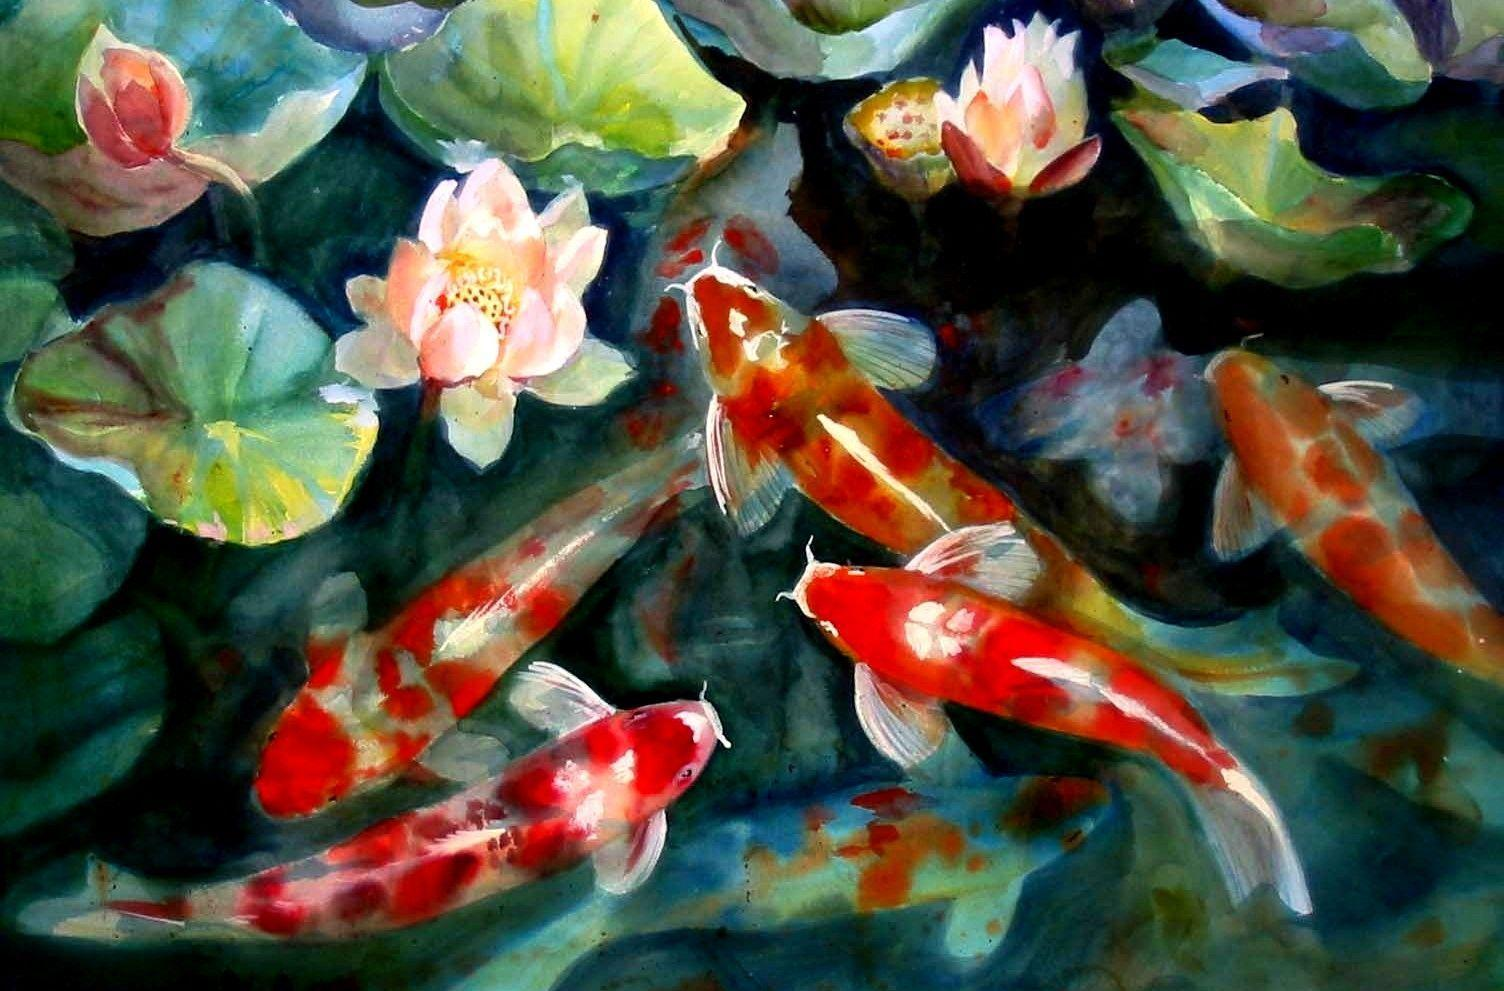 Koi Fish Pond Wallpapers Top Free Koi Fish Pond Backgrounds